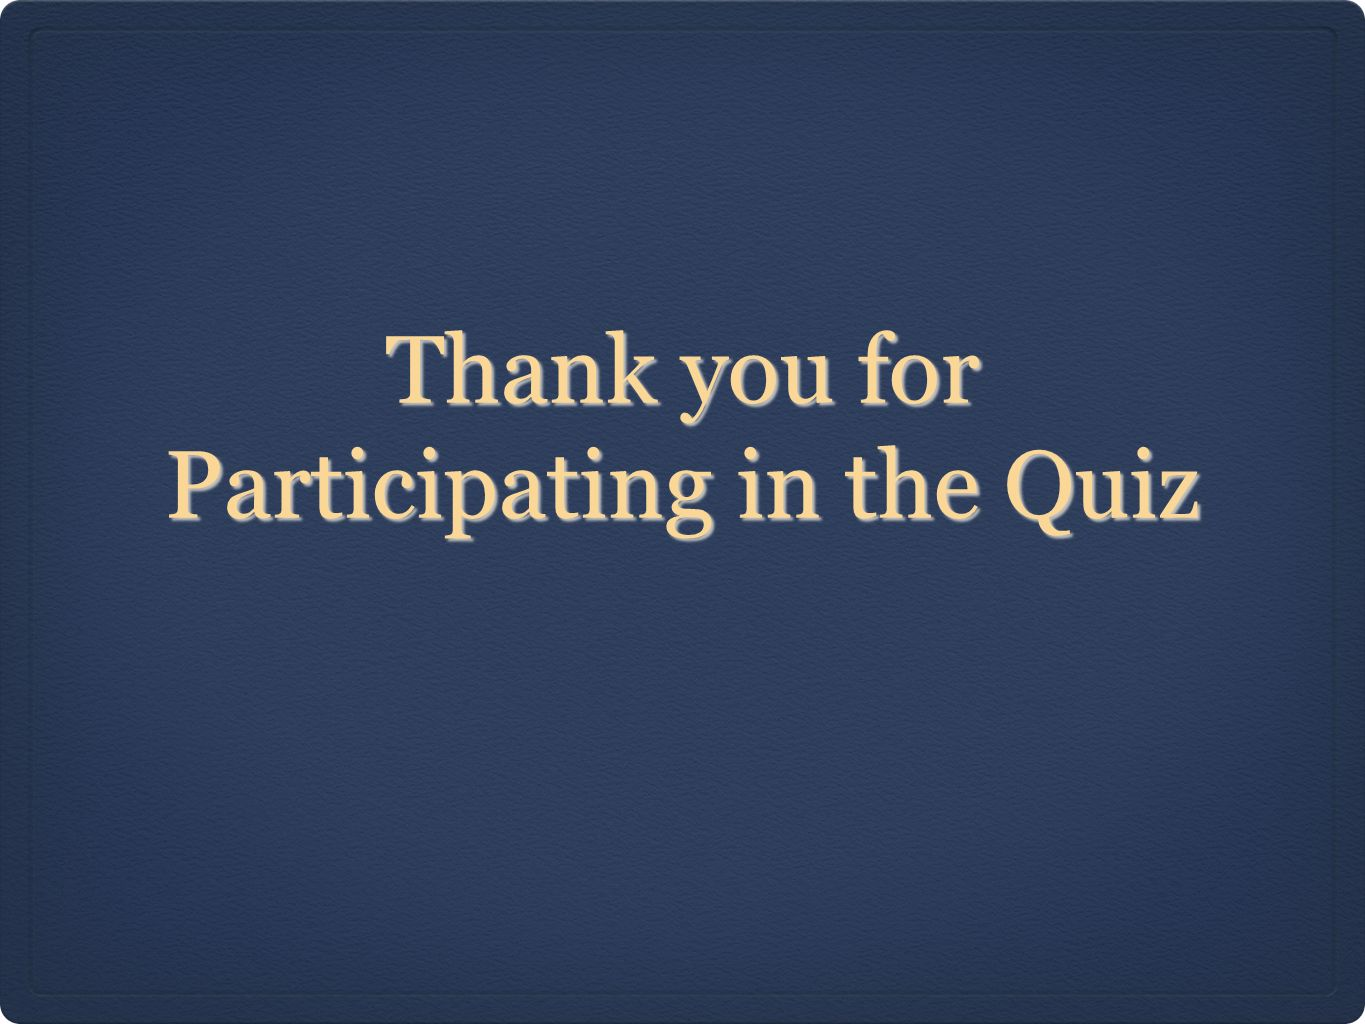 Thank you for Participating in the Quiz